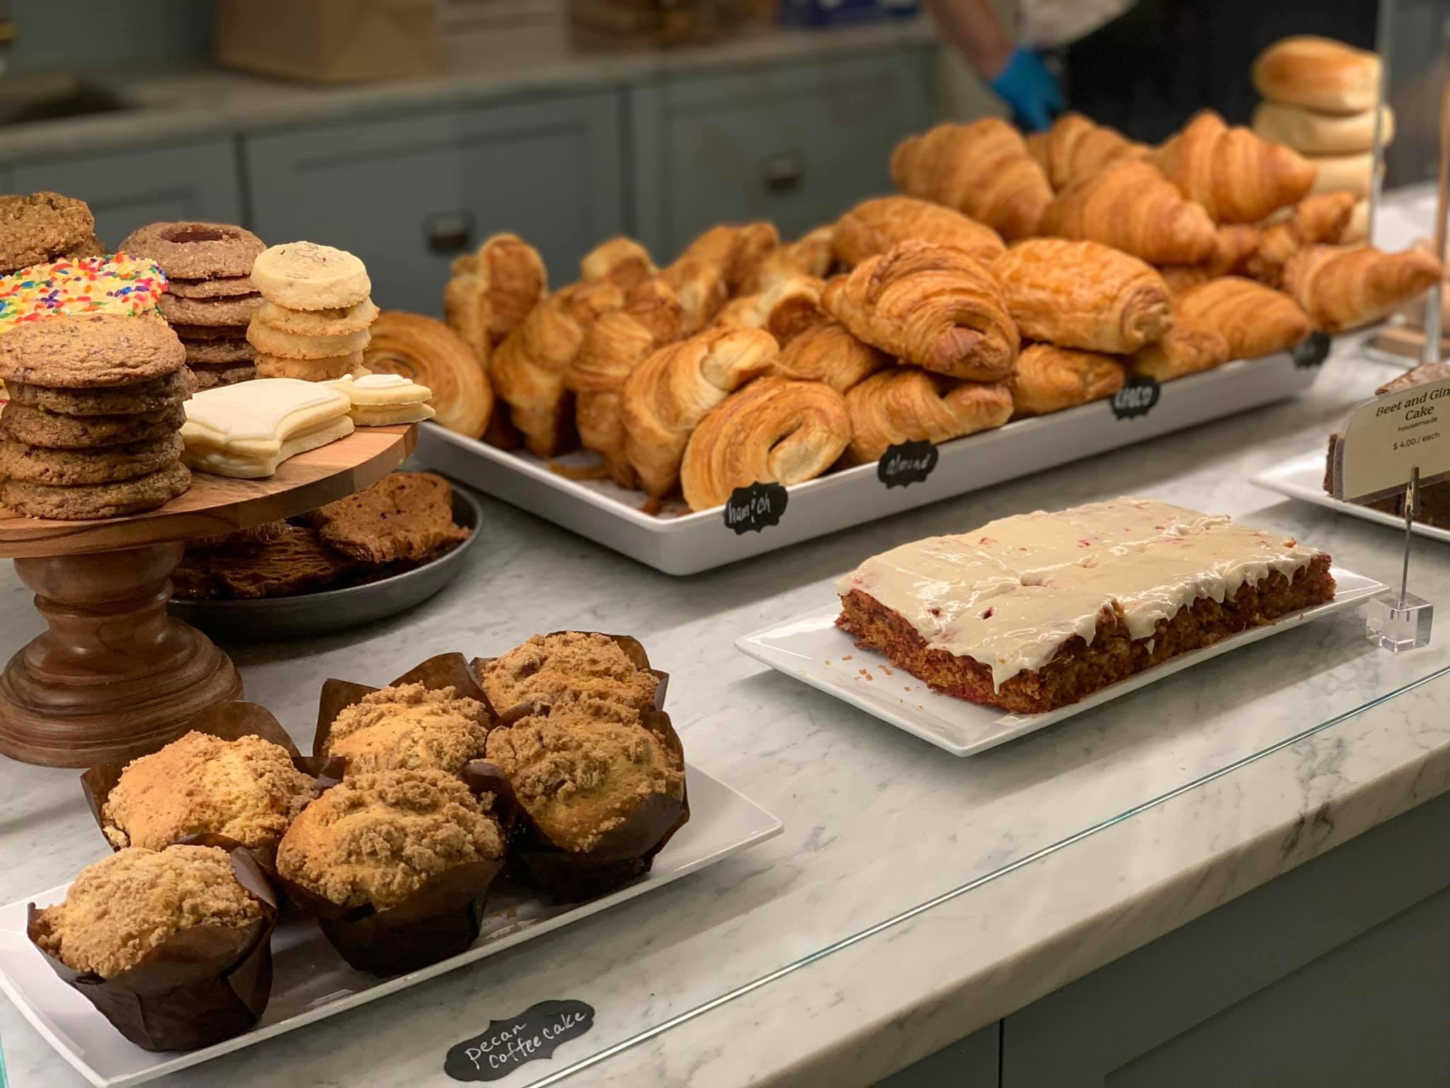 Pastries from Isabel's Market & Eatery.